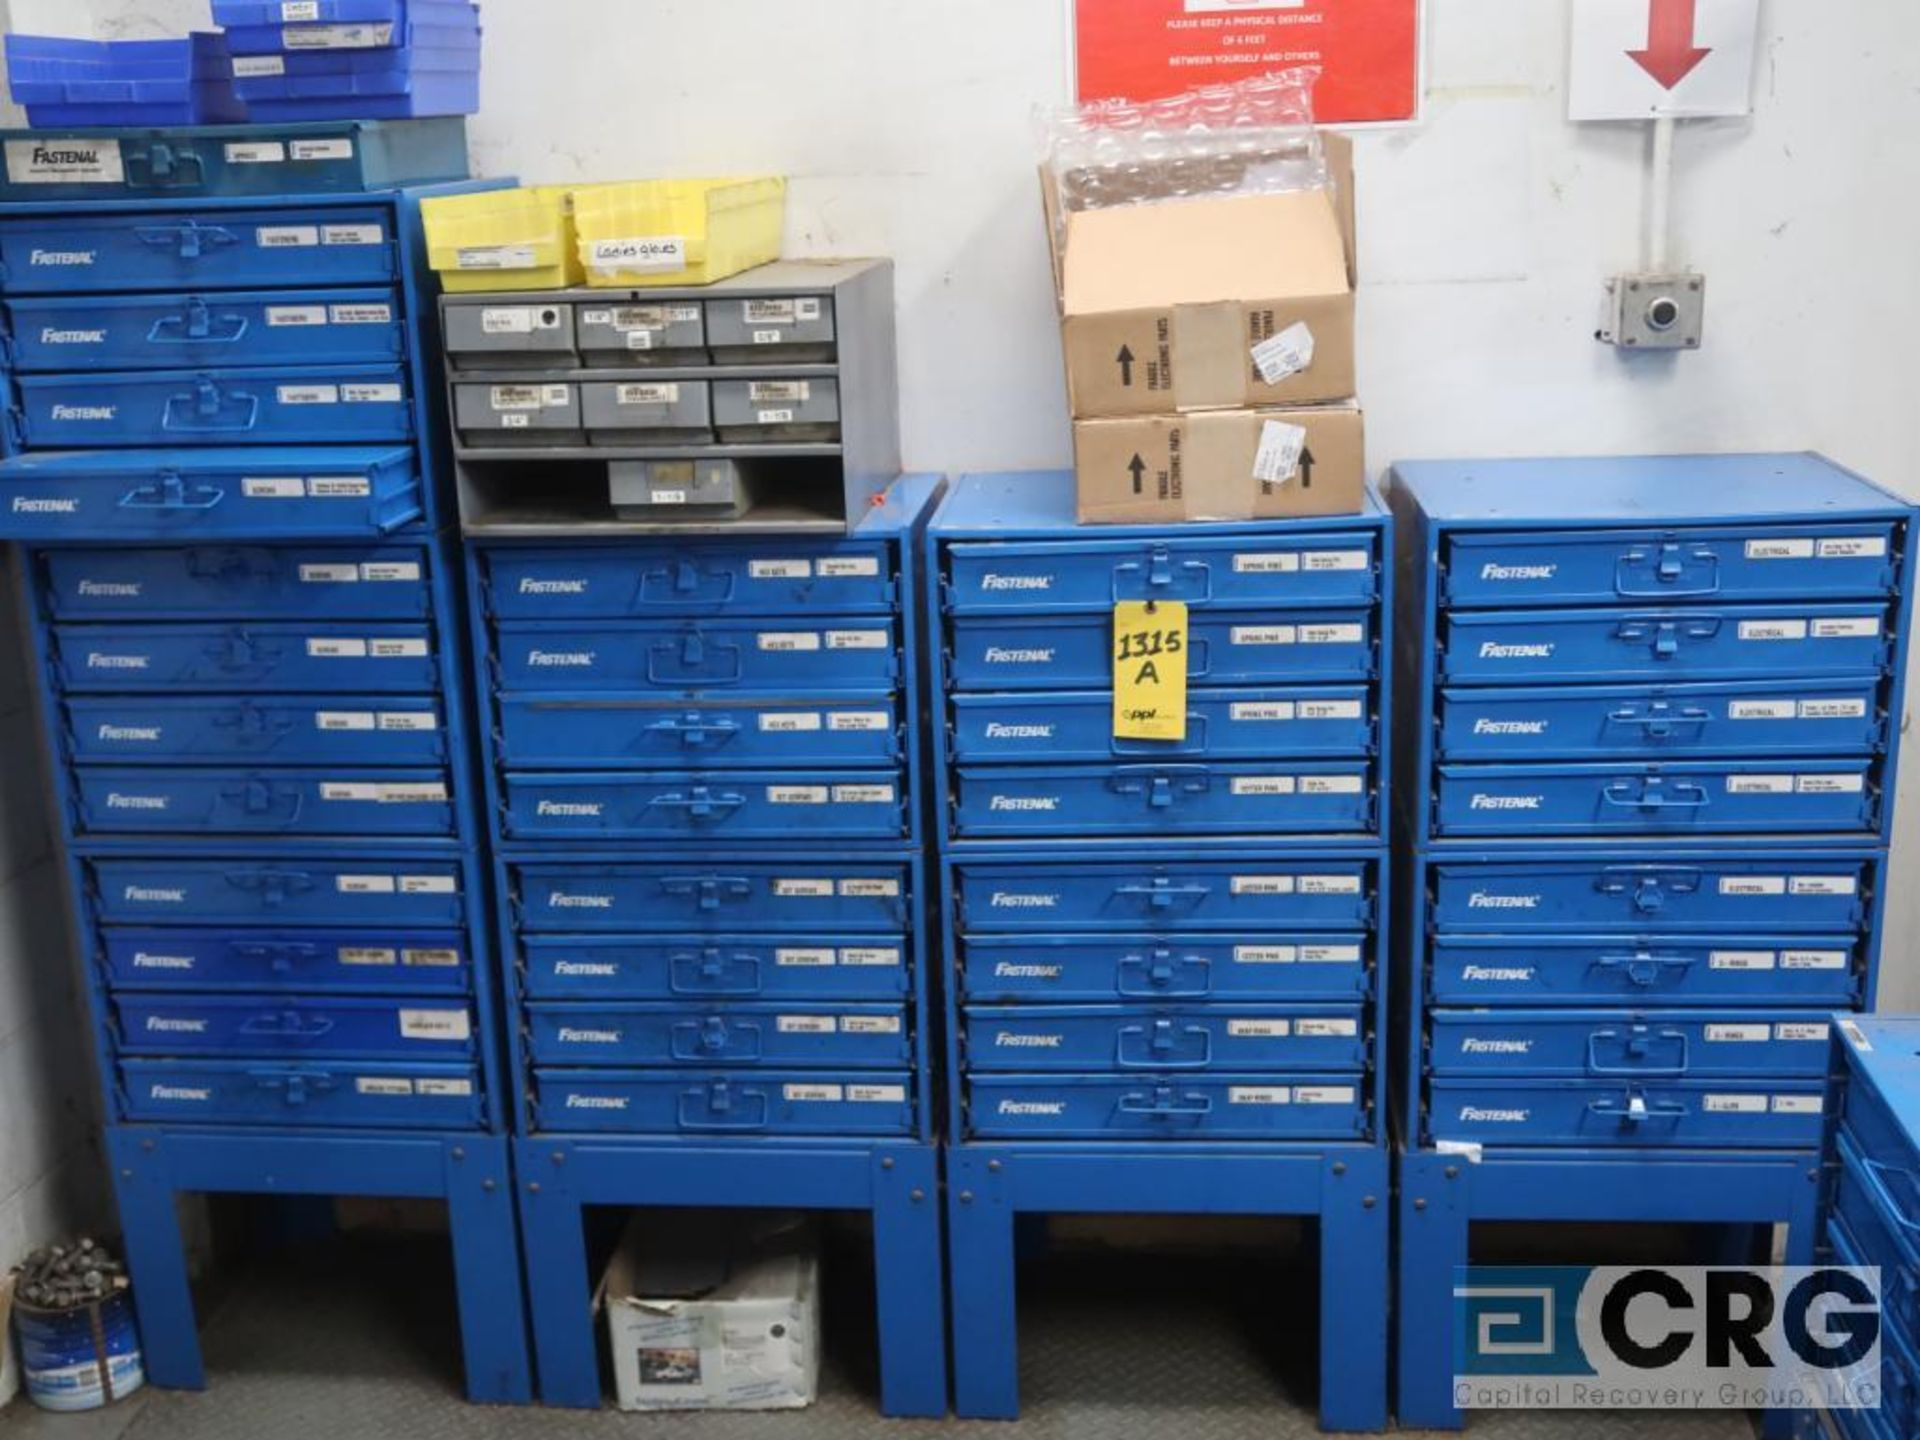 Nut and bolt 4 drawer parts bin with parts including wire, nuts, springs, cotter pins, and bin - Image 2 of 4